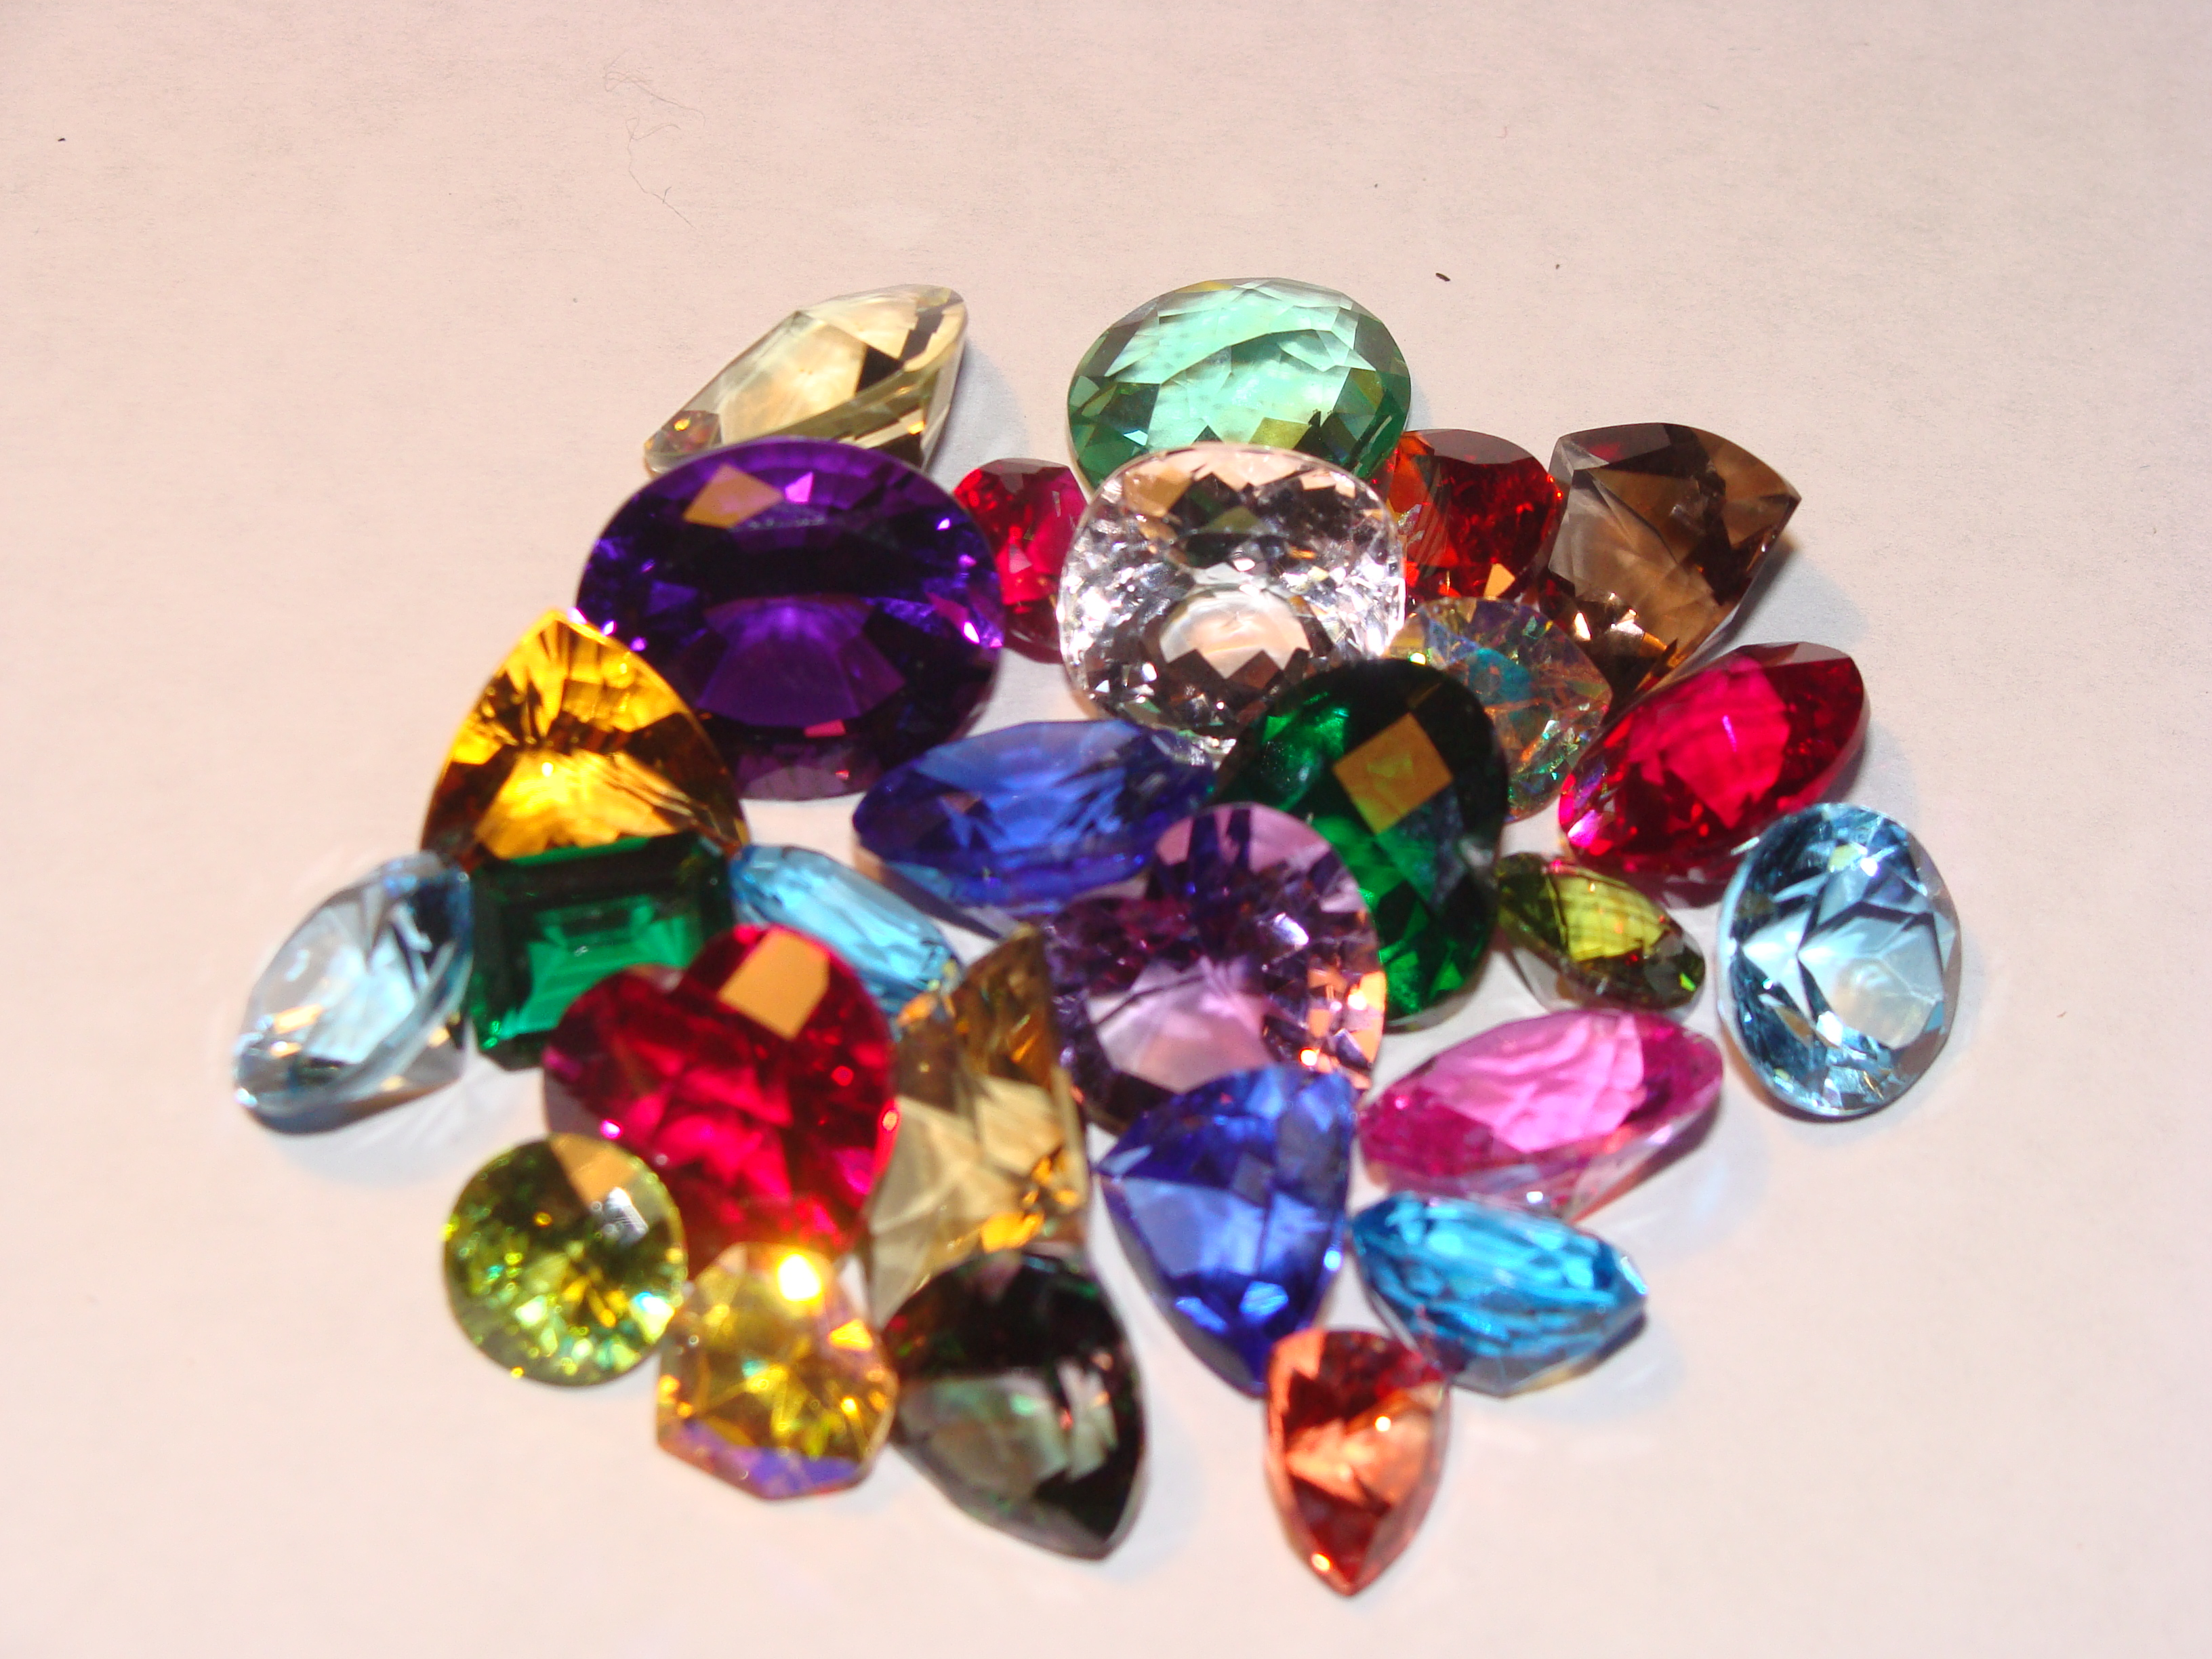 Synthetic vs Natural Gems Whats the Difference